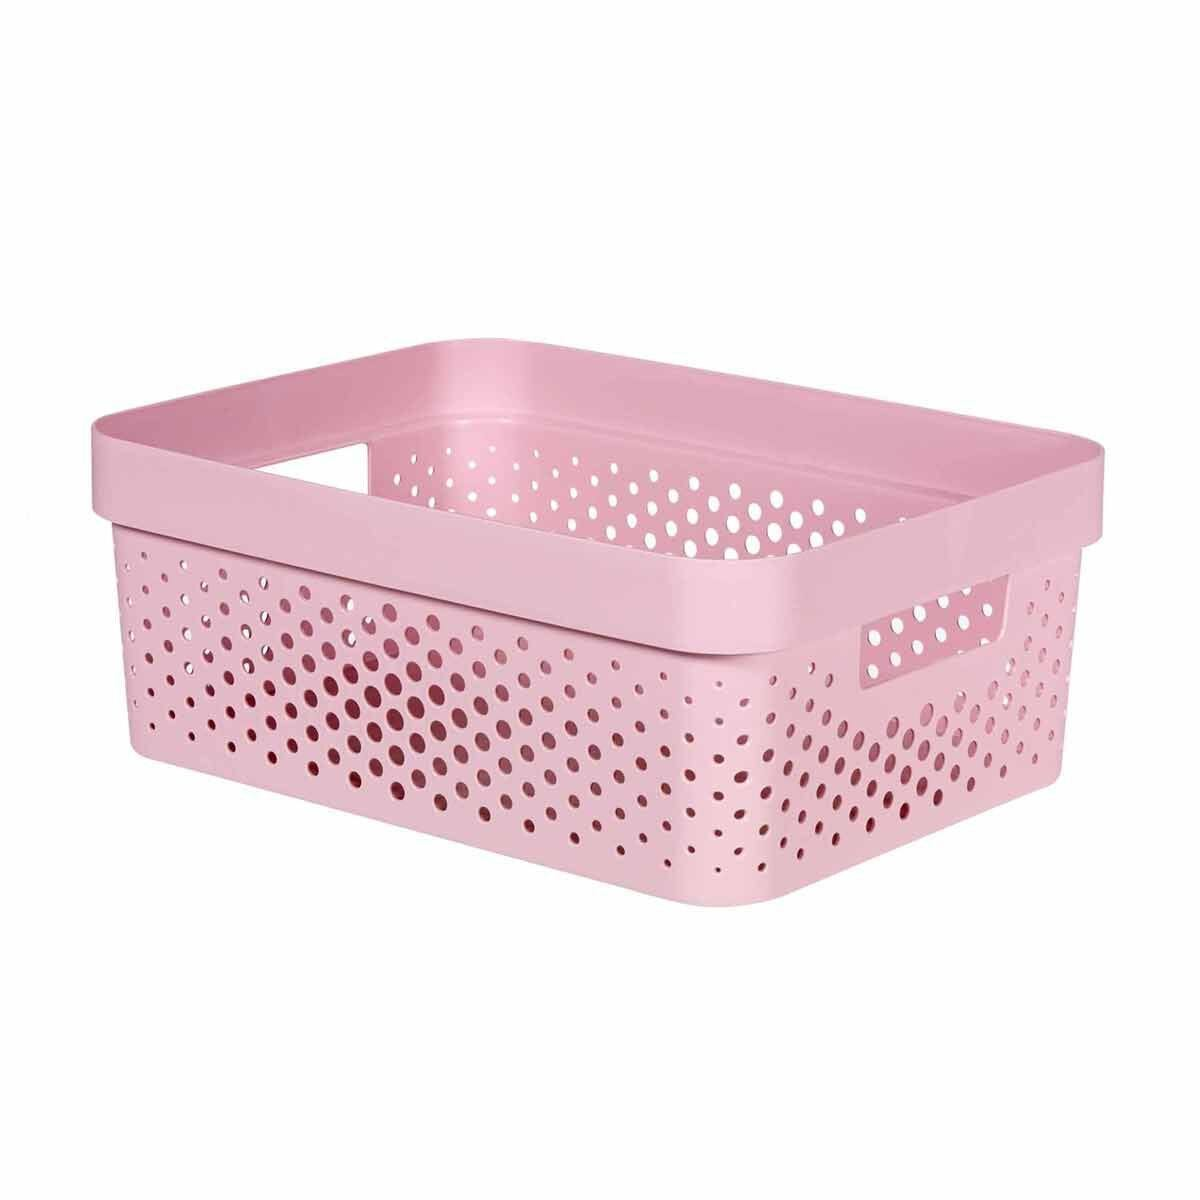 Curver Infinity Recycled Storage Basket 11 Litres Pack of 6 Pink